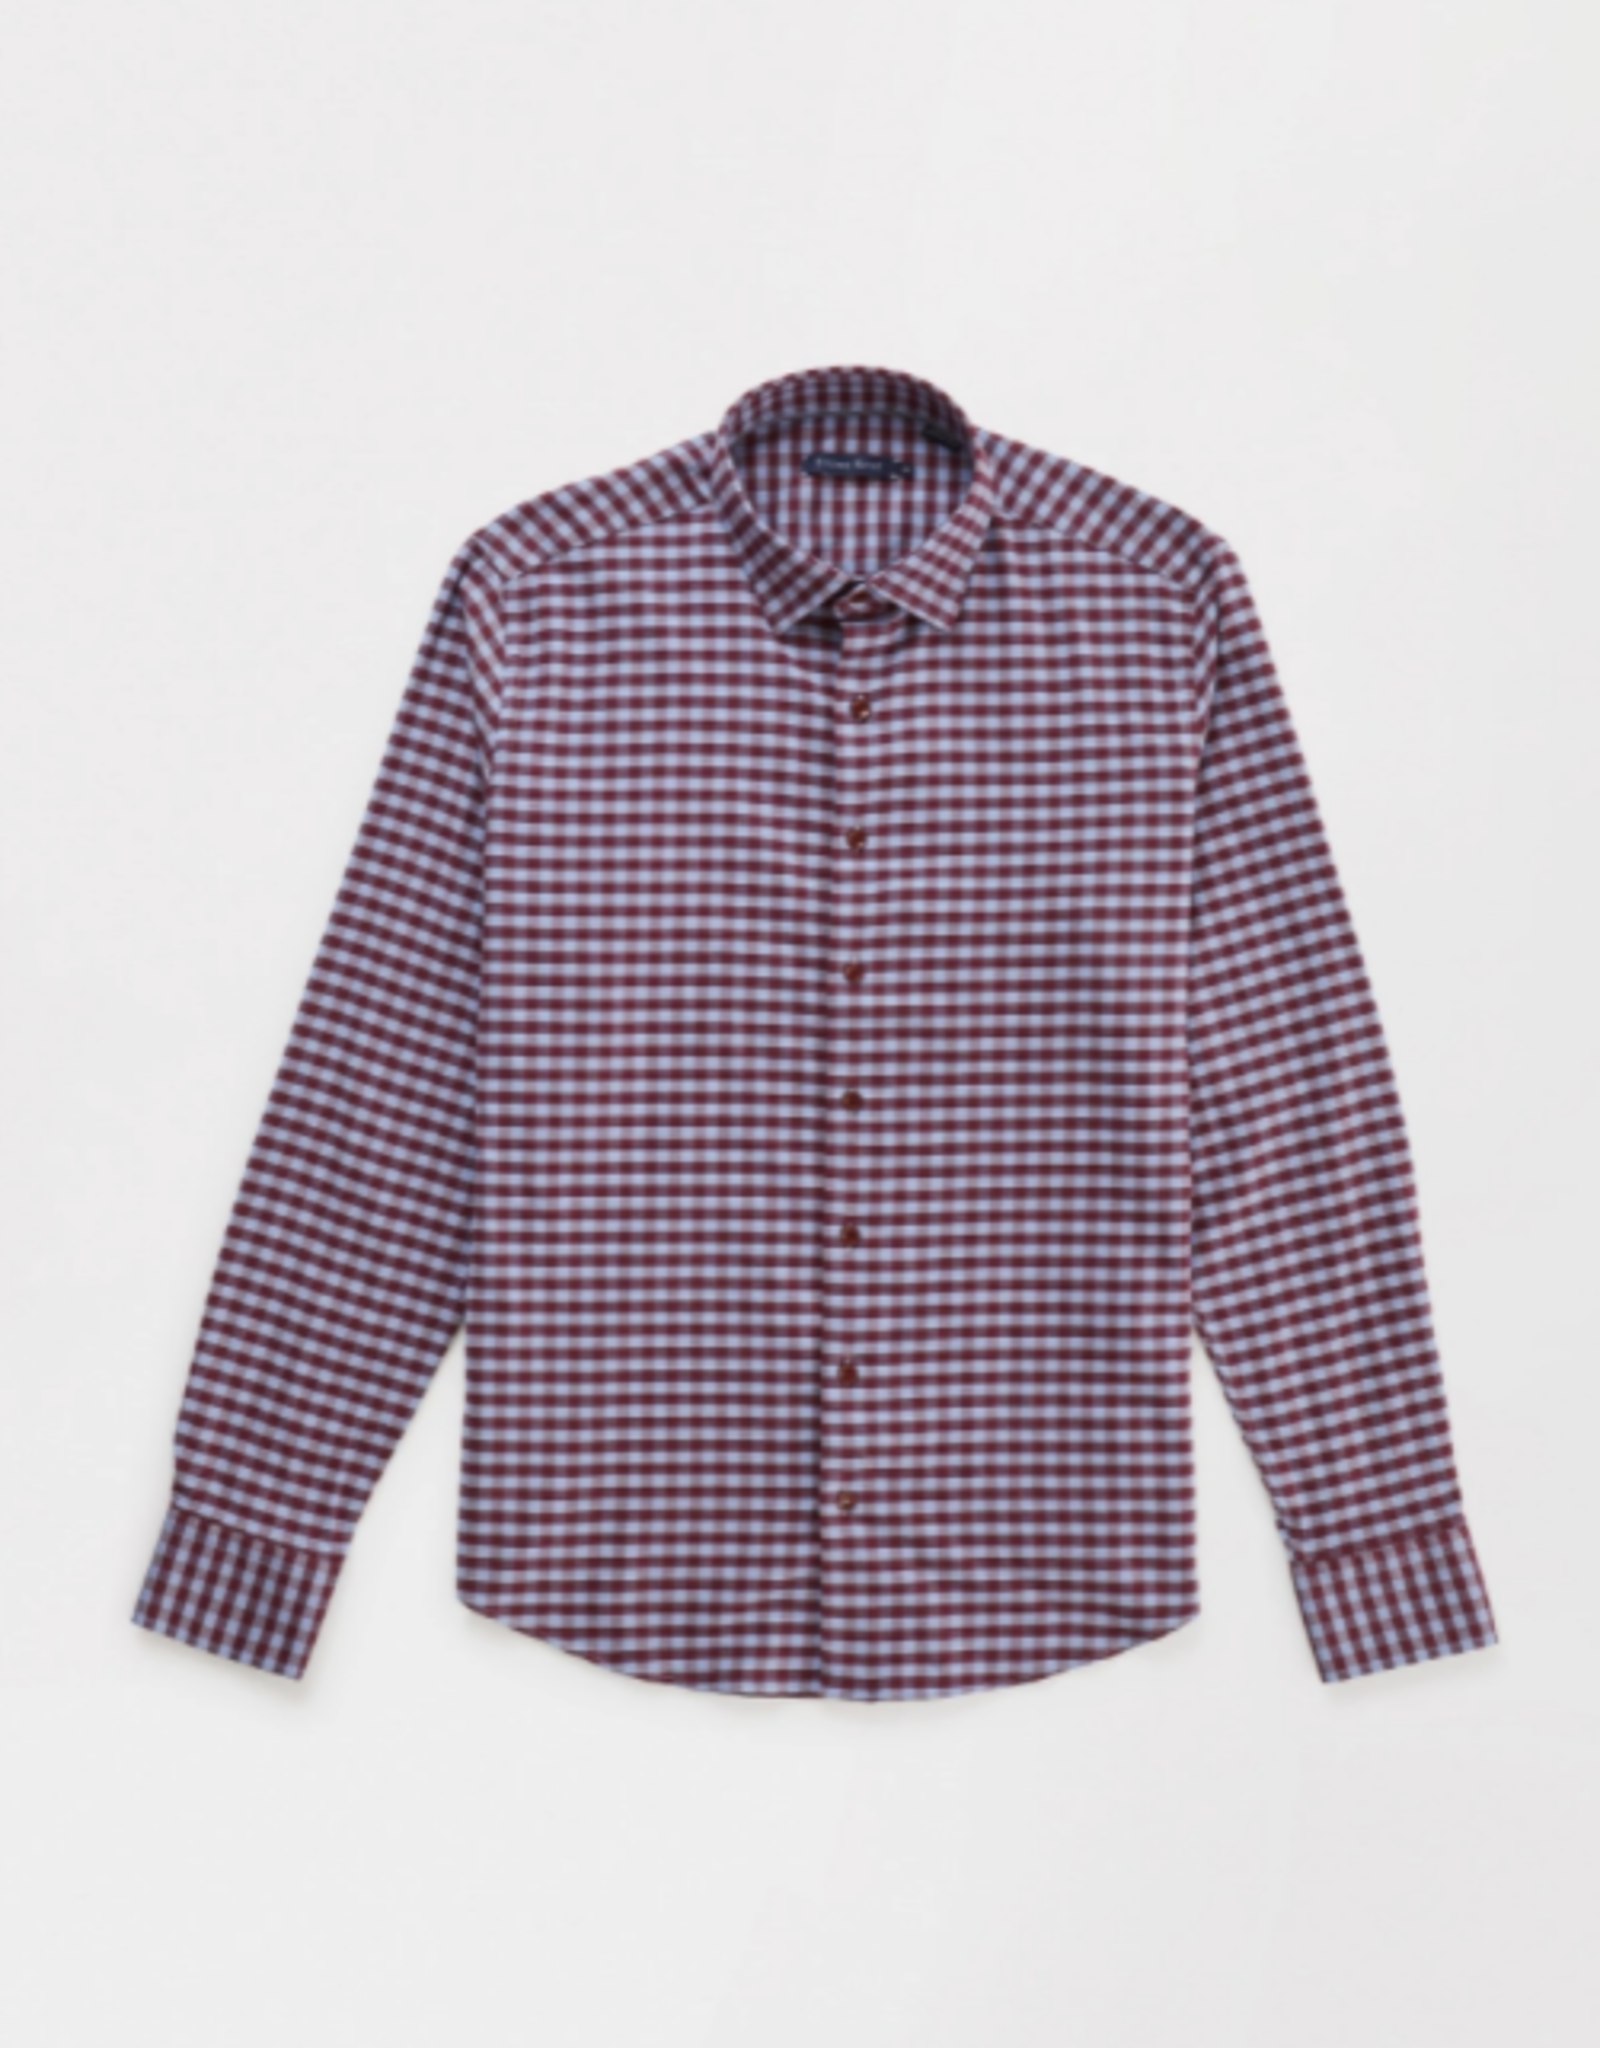 Long Sleeve Knit Brushed Woven